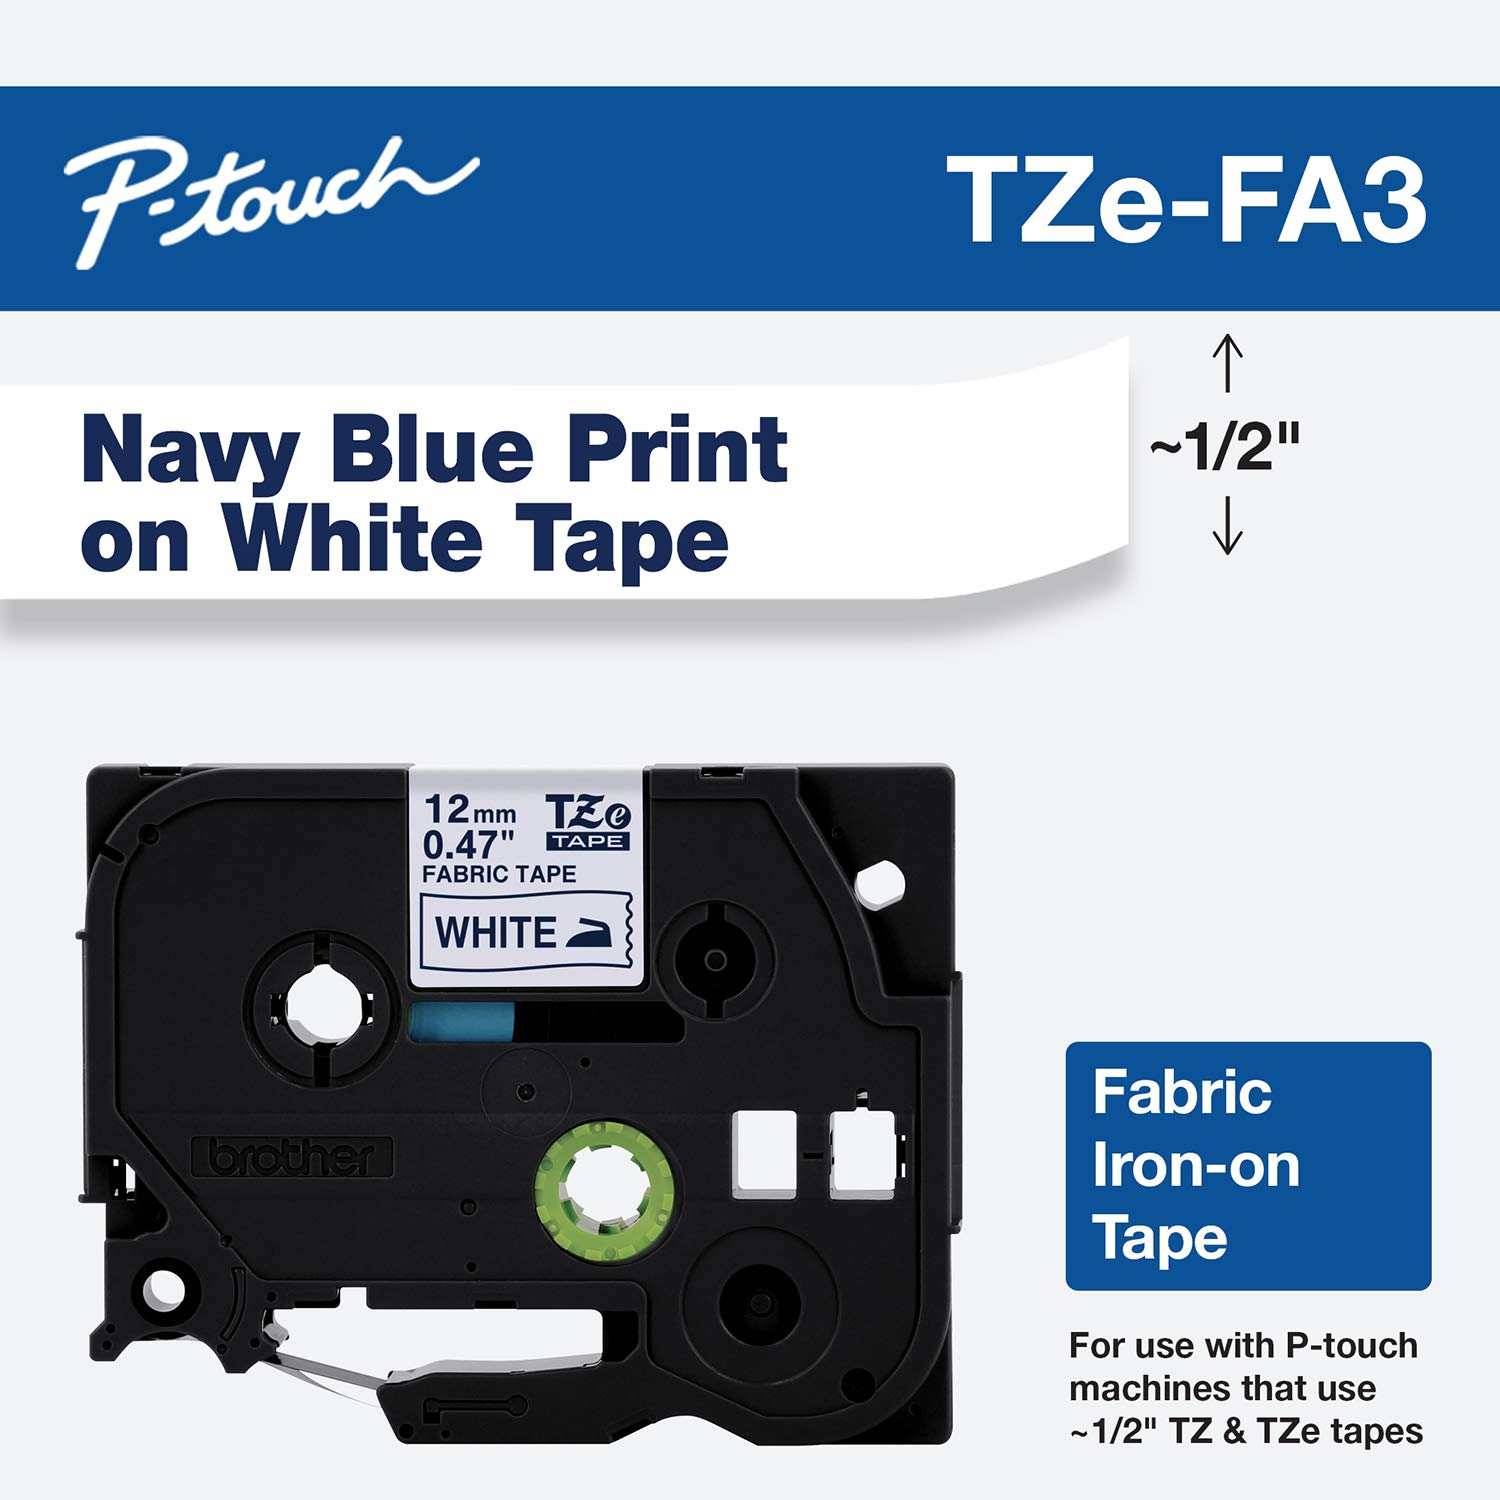 "Brother Genuine P-touch TZE-FA3 Tape, 1/2"" (0.47"") Wide Fabric Iron-On Tape, Navy Blue on White, Can be Ironed onto Virtually Any Cotton Item, 0.47"" x 9.8' (12mm x 3M), Single-Pack, TZEFA3"